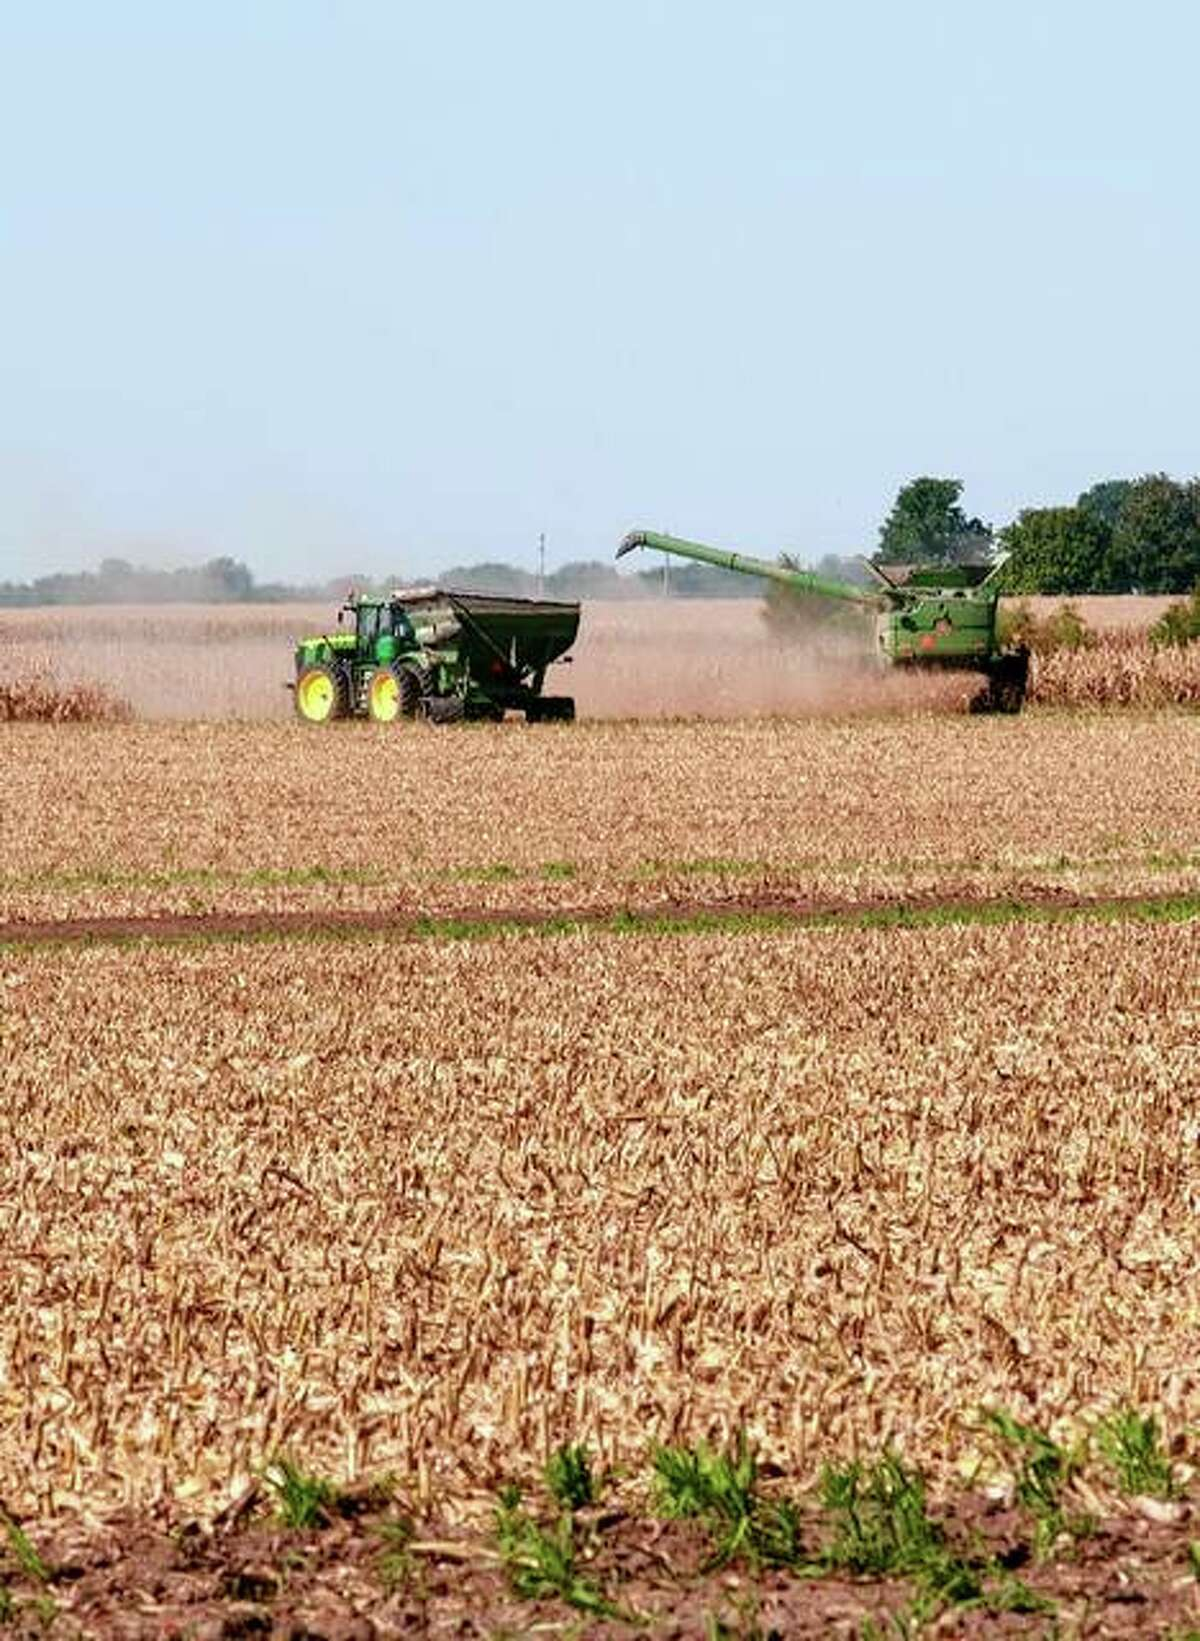 Farmers harvest crops Thursday in a field along Old Jacksonville Road. Police caution drivers to be aware that this is a time of year when farm equipment is traveling on roads and, as a matter of safety for everyone, should be given plenty of room.